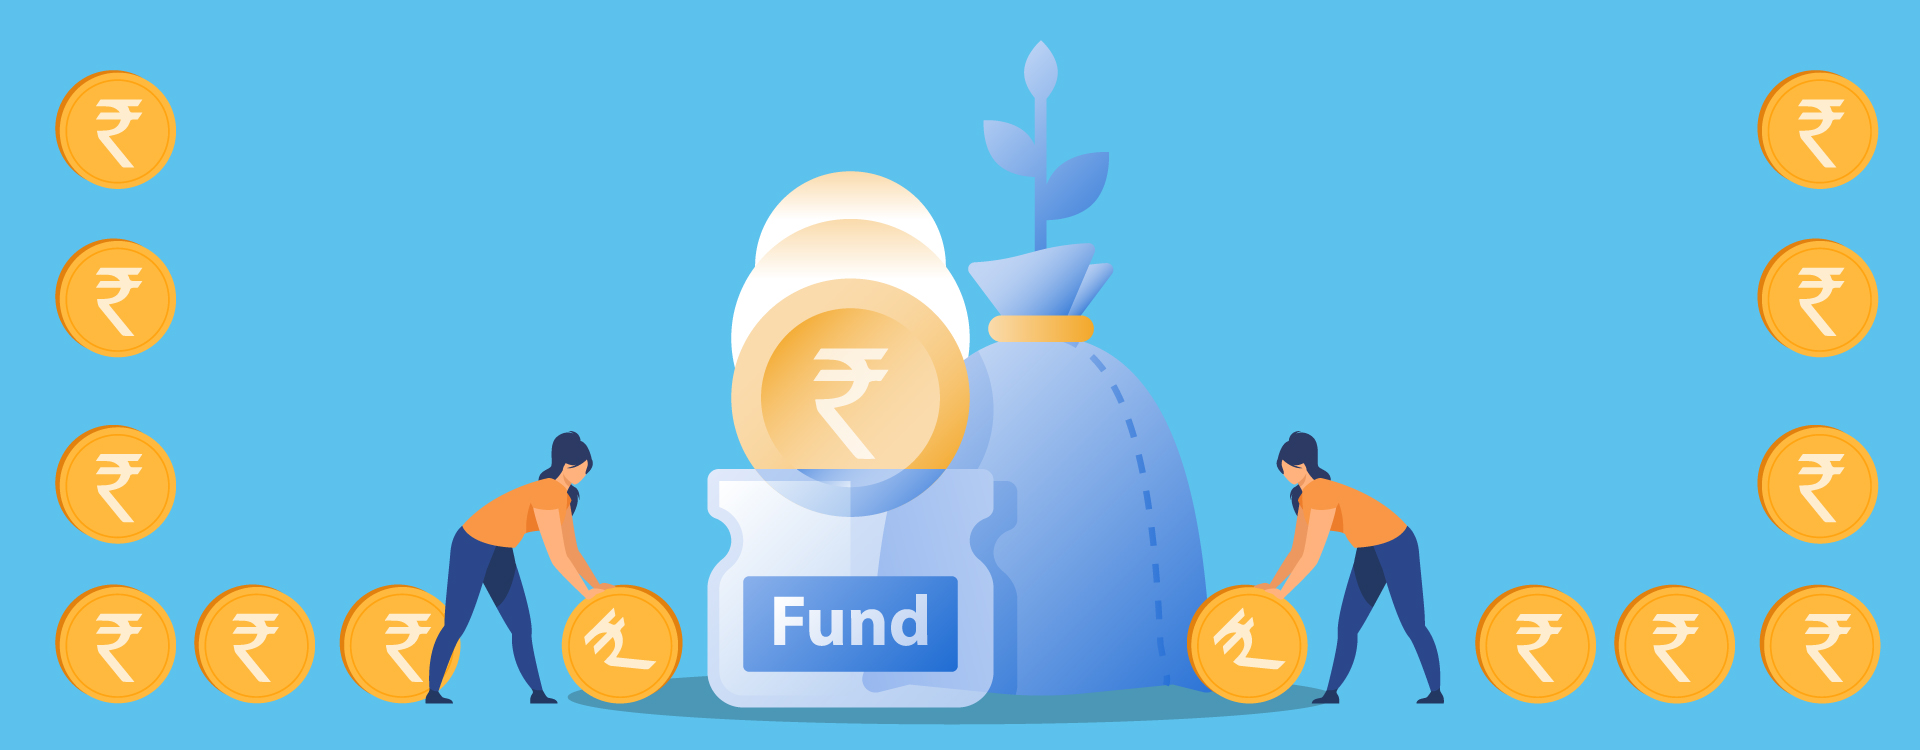 How to raise funding for your startup: Business Tips